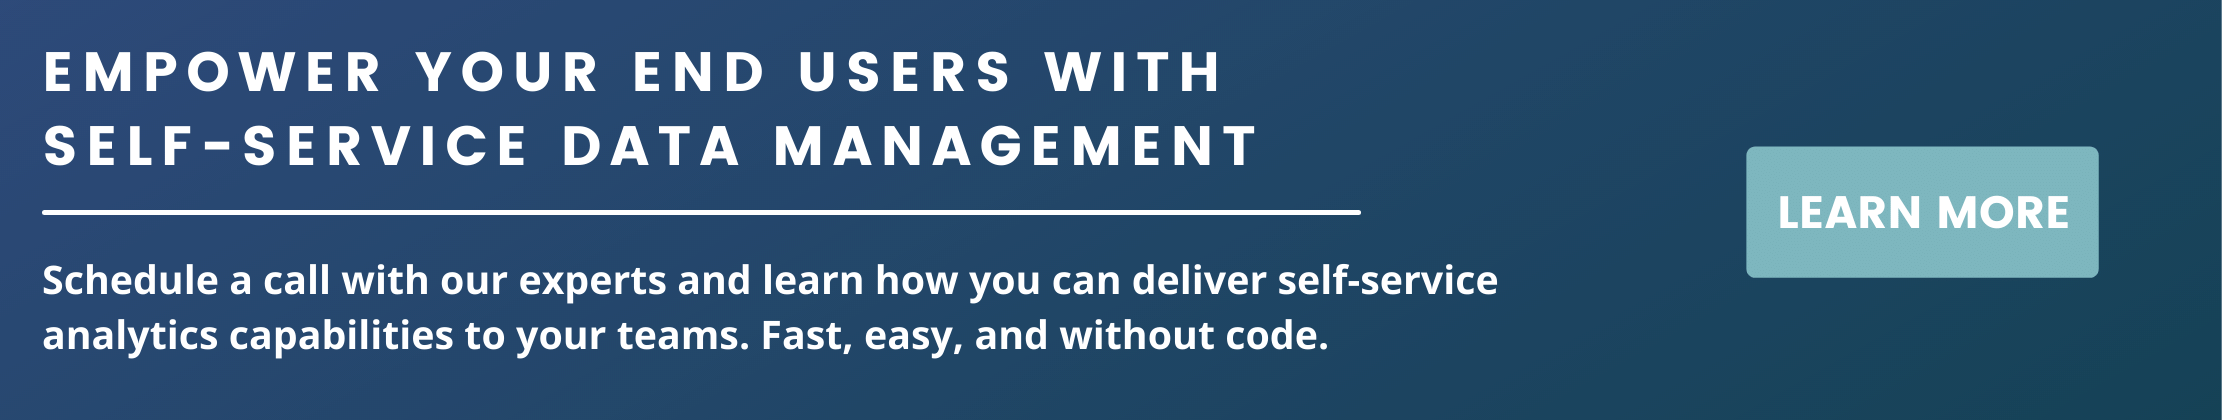 empower your users with self-service data management